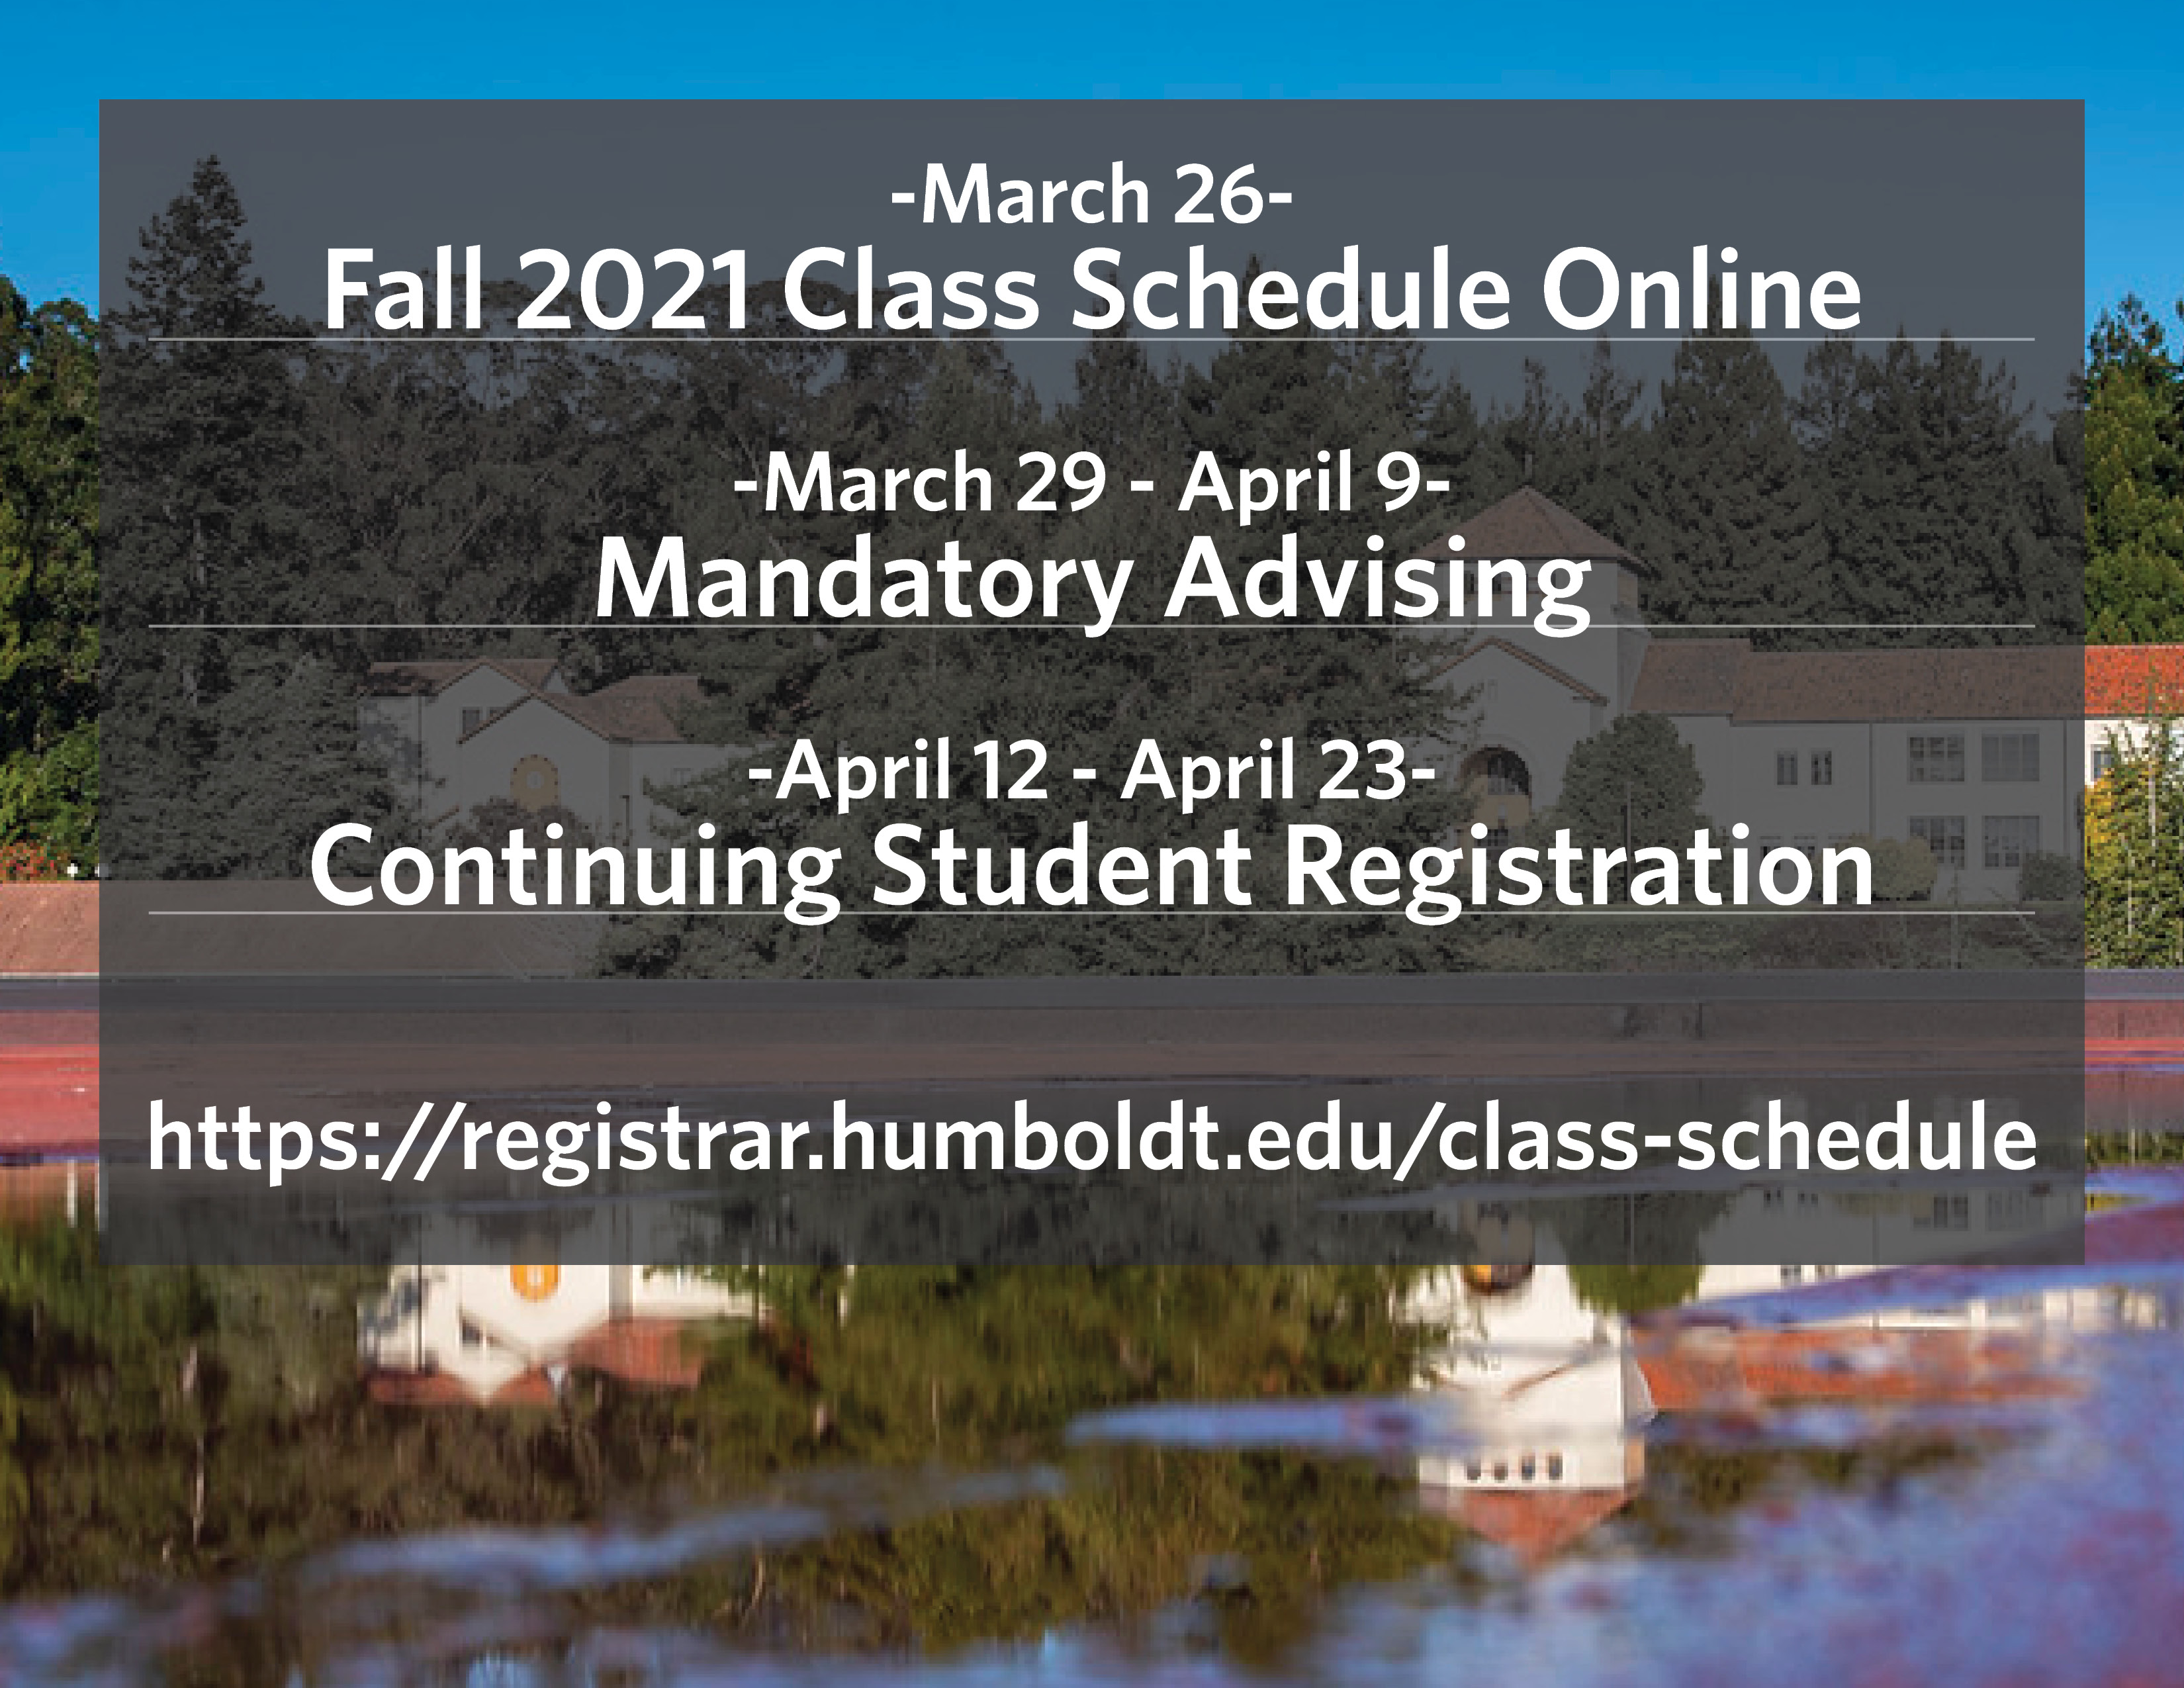 -March 26- Fall 2021 Class Schedule Online  -March 29 - April 9- Mandatory Advising  -April 12 - April 23- Continuing Student Registration